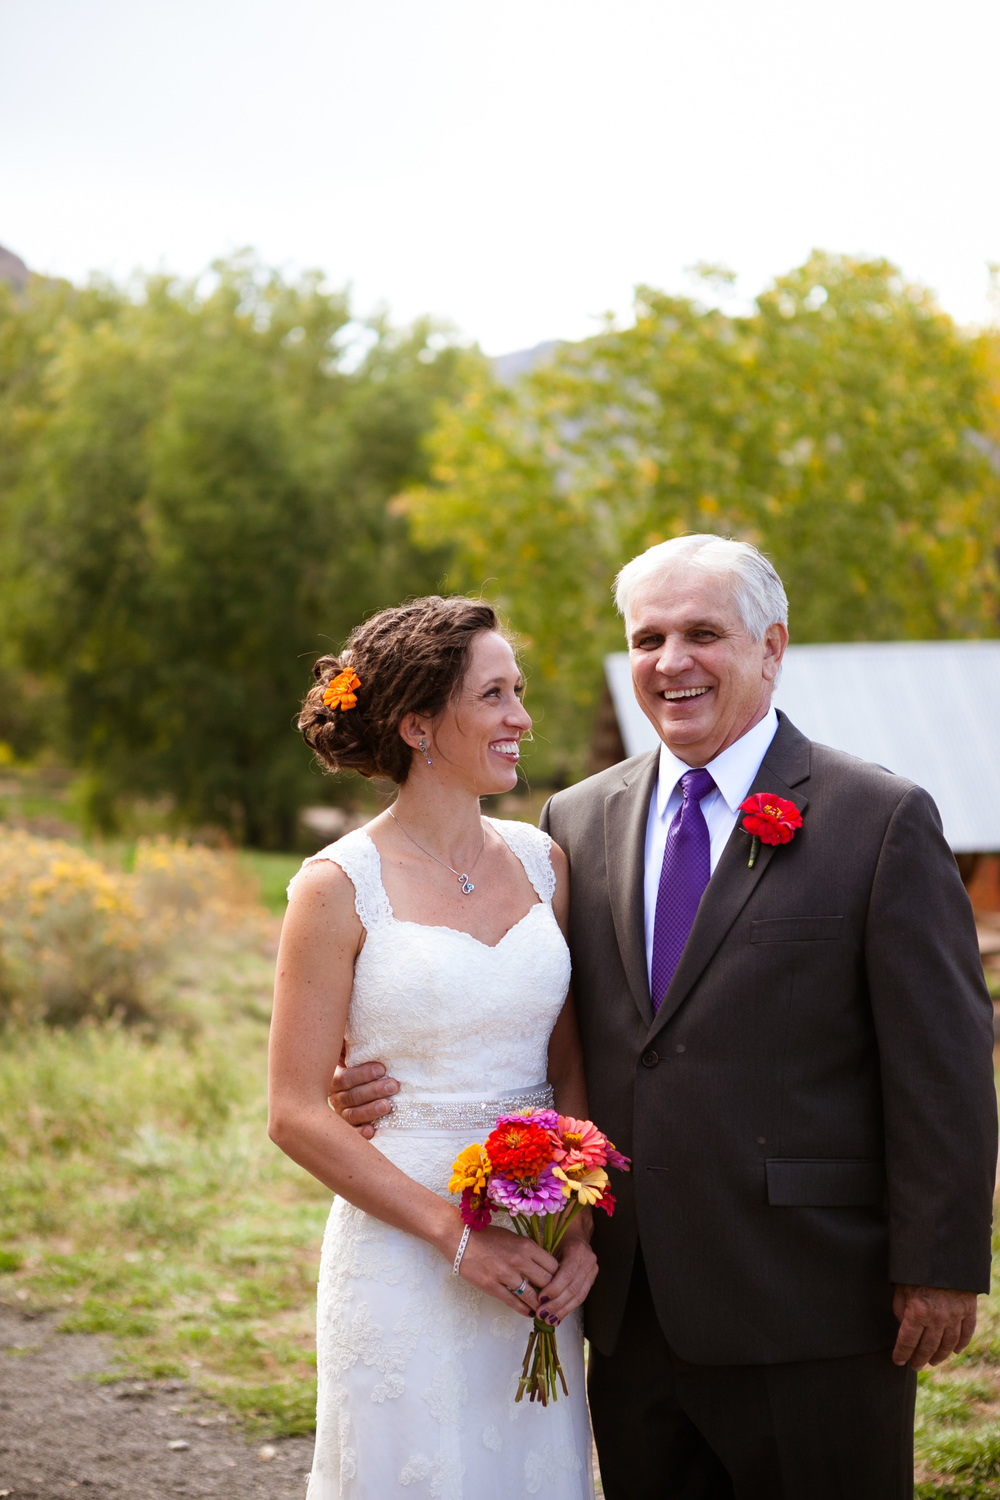 Coal_Creek_Canyon_Wedding_037.JPG